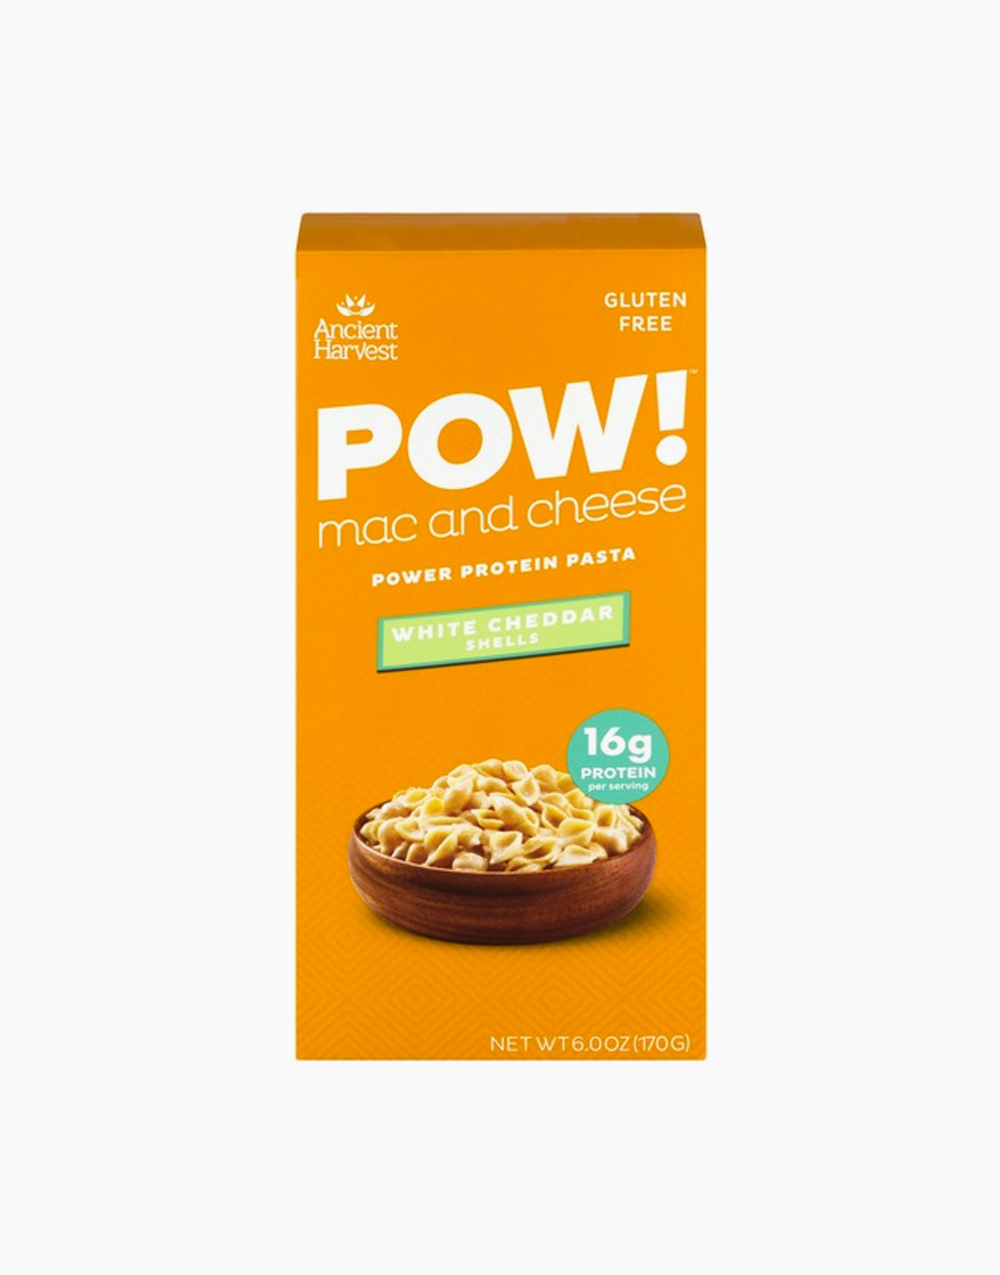 POW! Mac and Cheese Power Protein Pasta White Cheddar Shells by Ancient Harvest